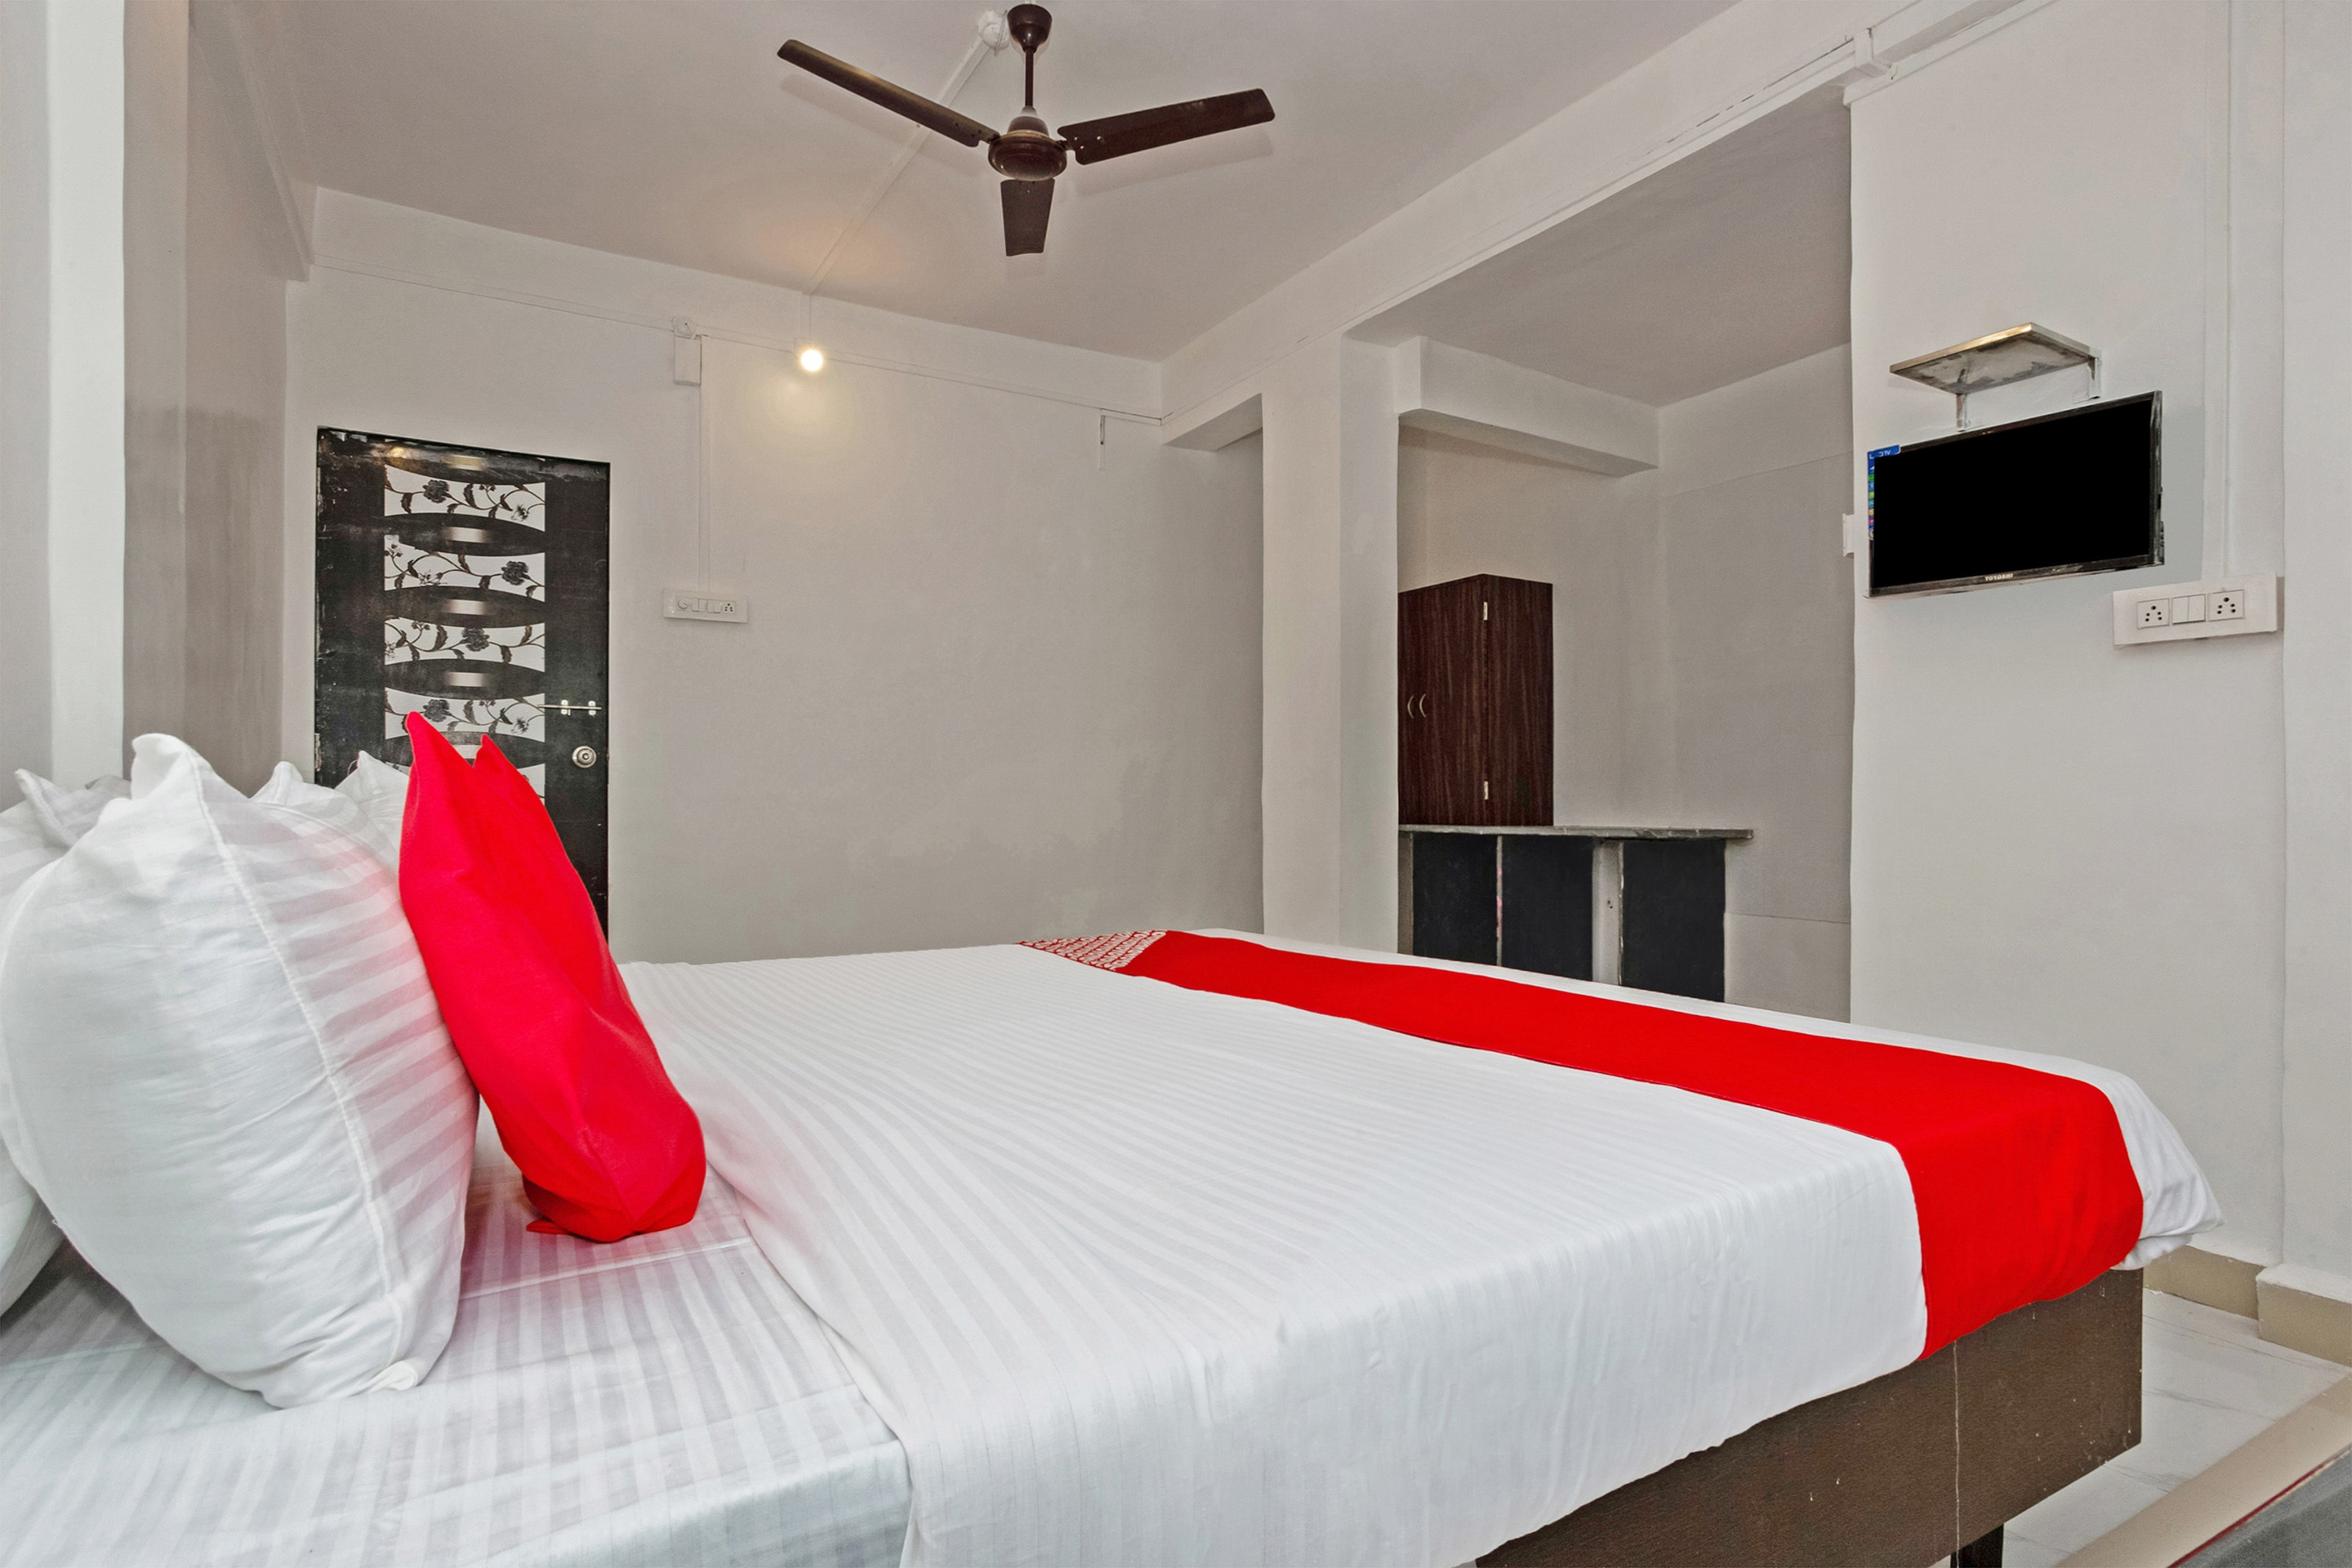 Hotel Gallarey OYO 24435 Shubham Lodging And Boarding